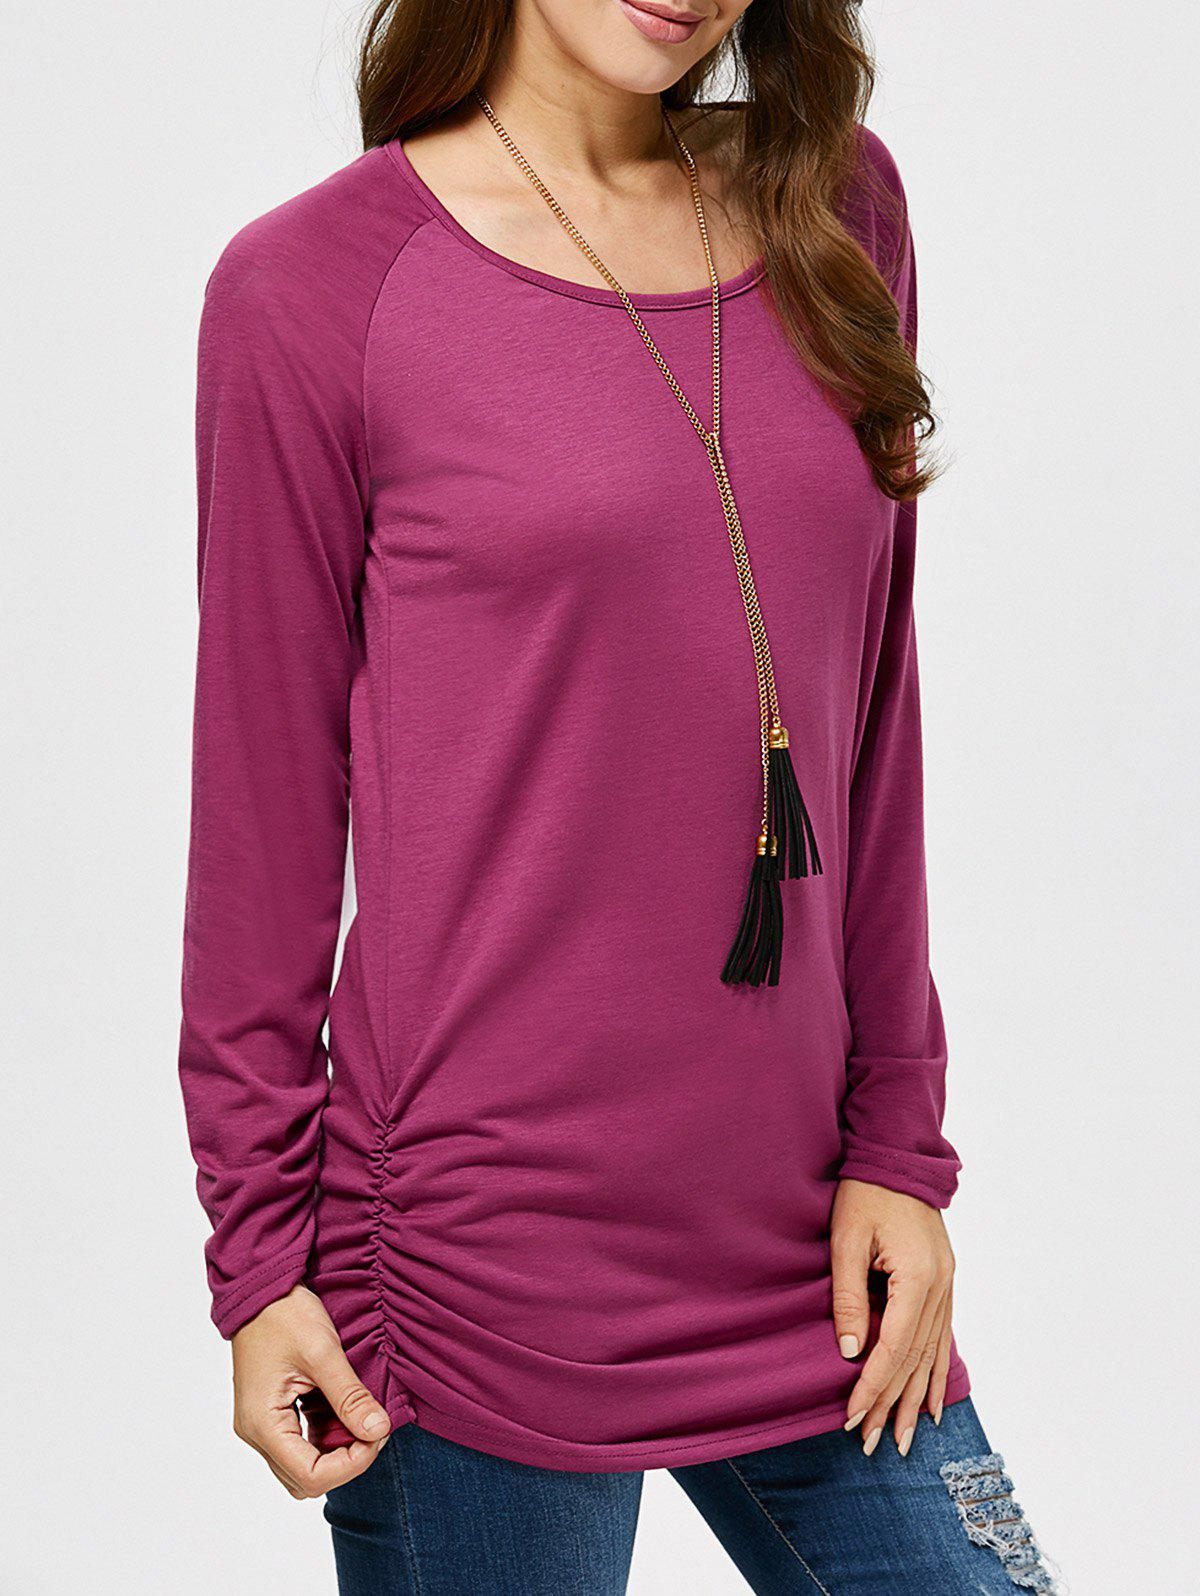 Ruched Long Sleeves Tunic T-Shirt - PURPLISH RED S